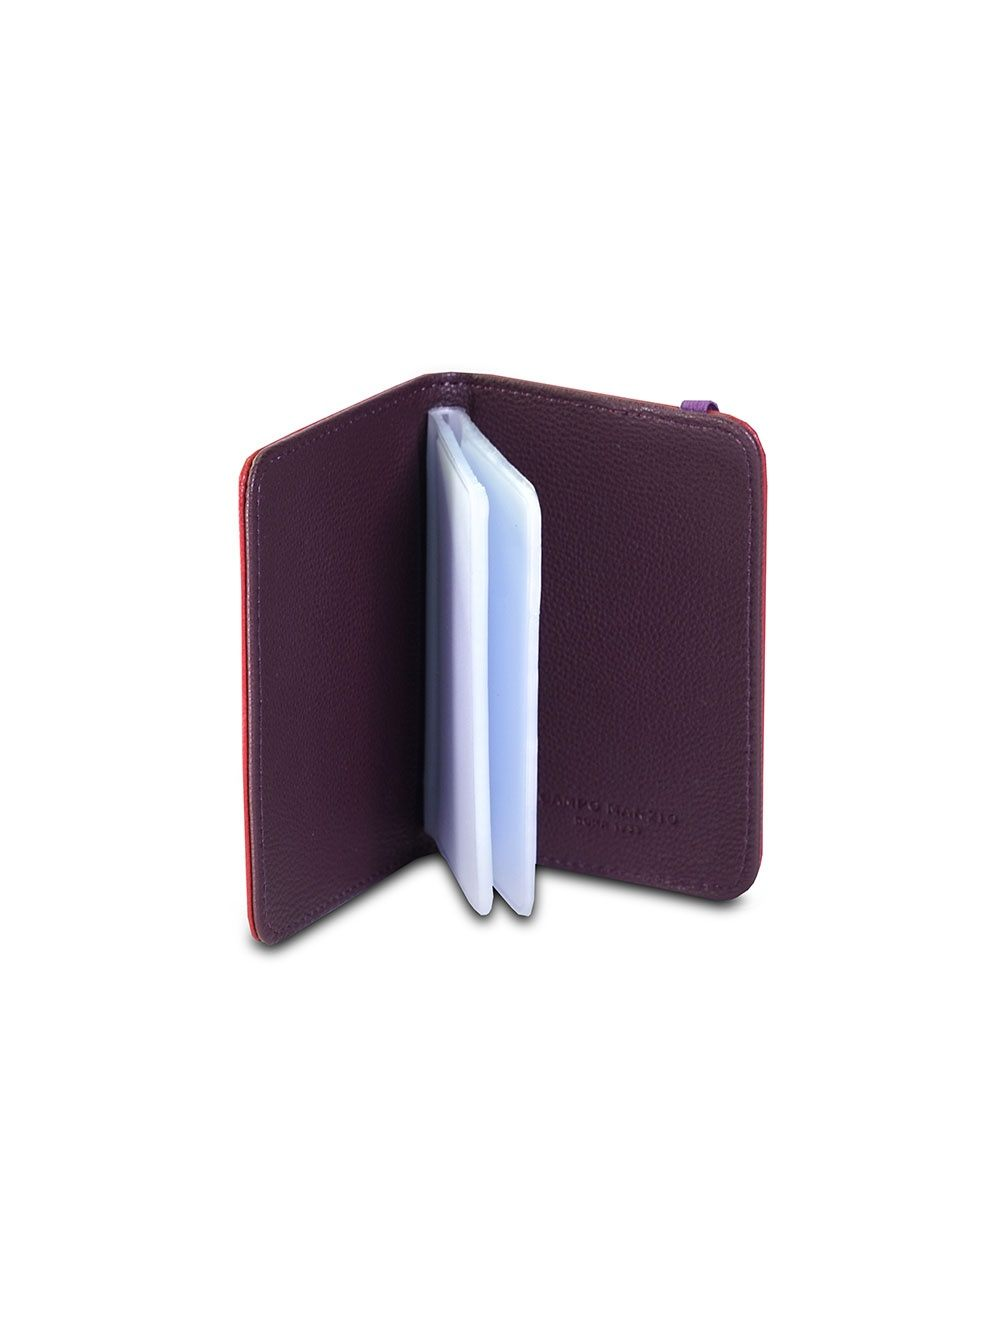 Fidelity Card Holder - Cherry  Red